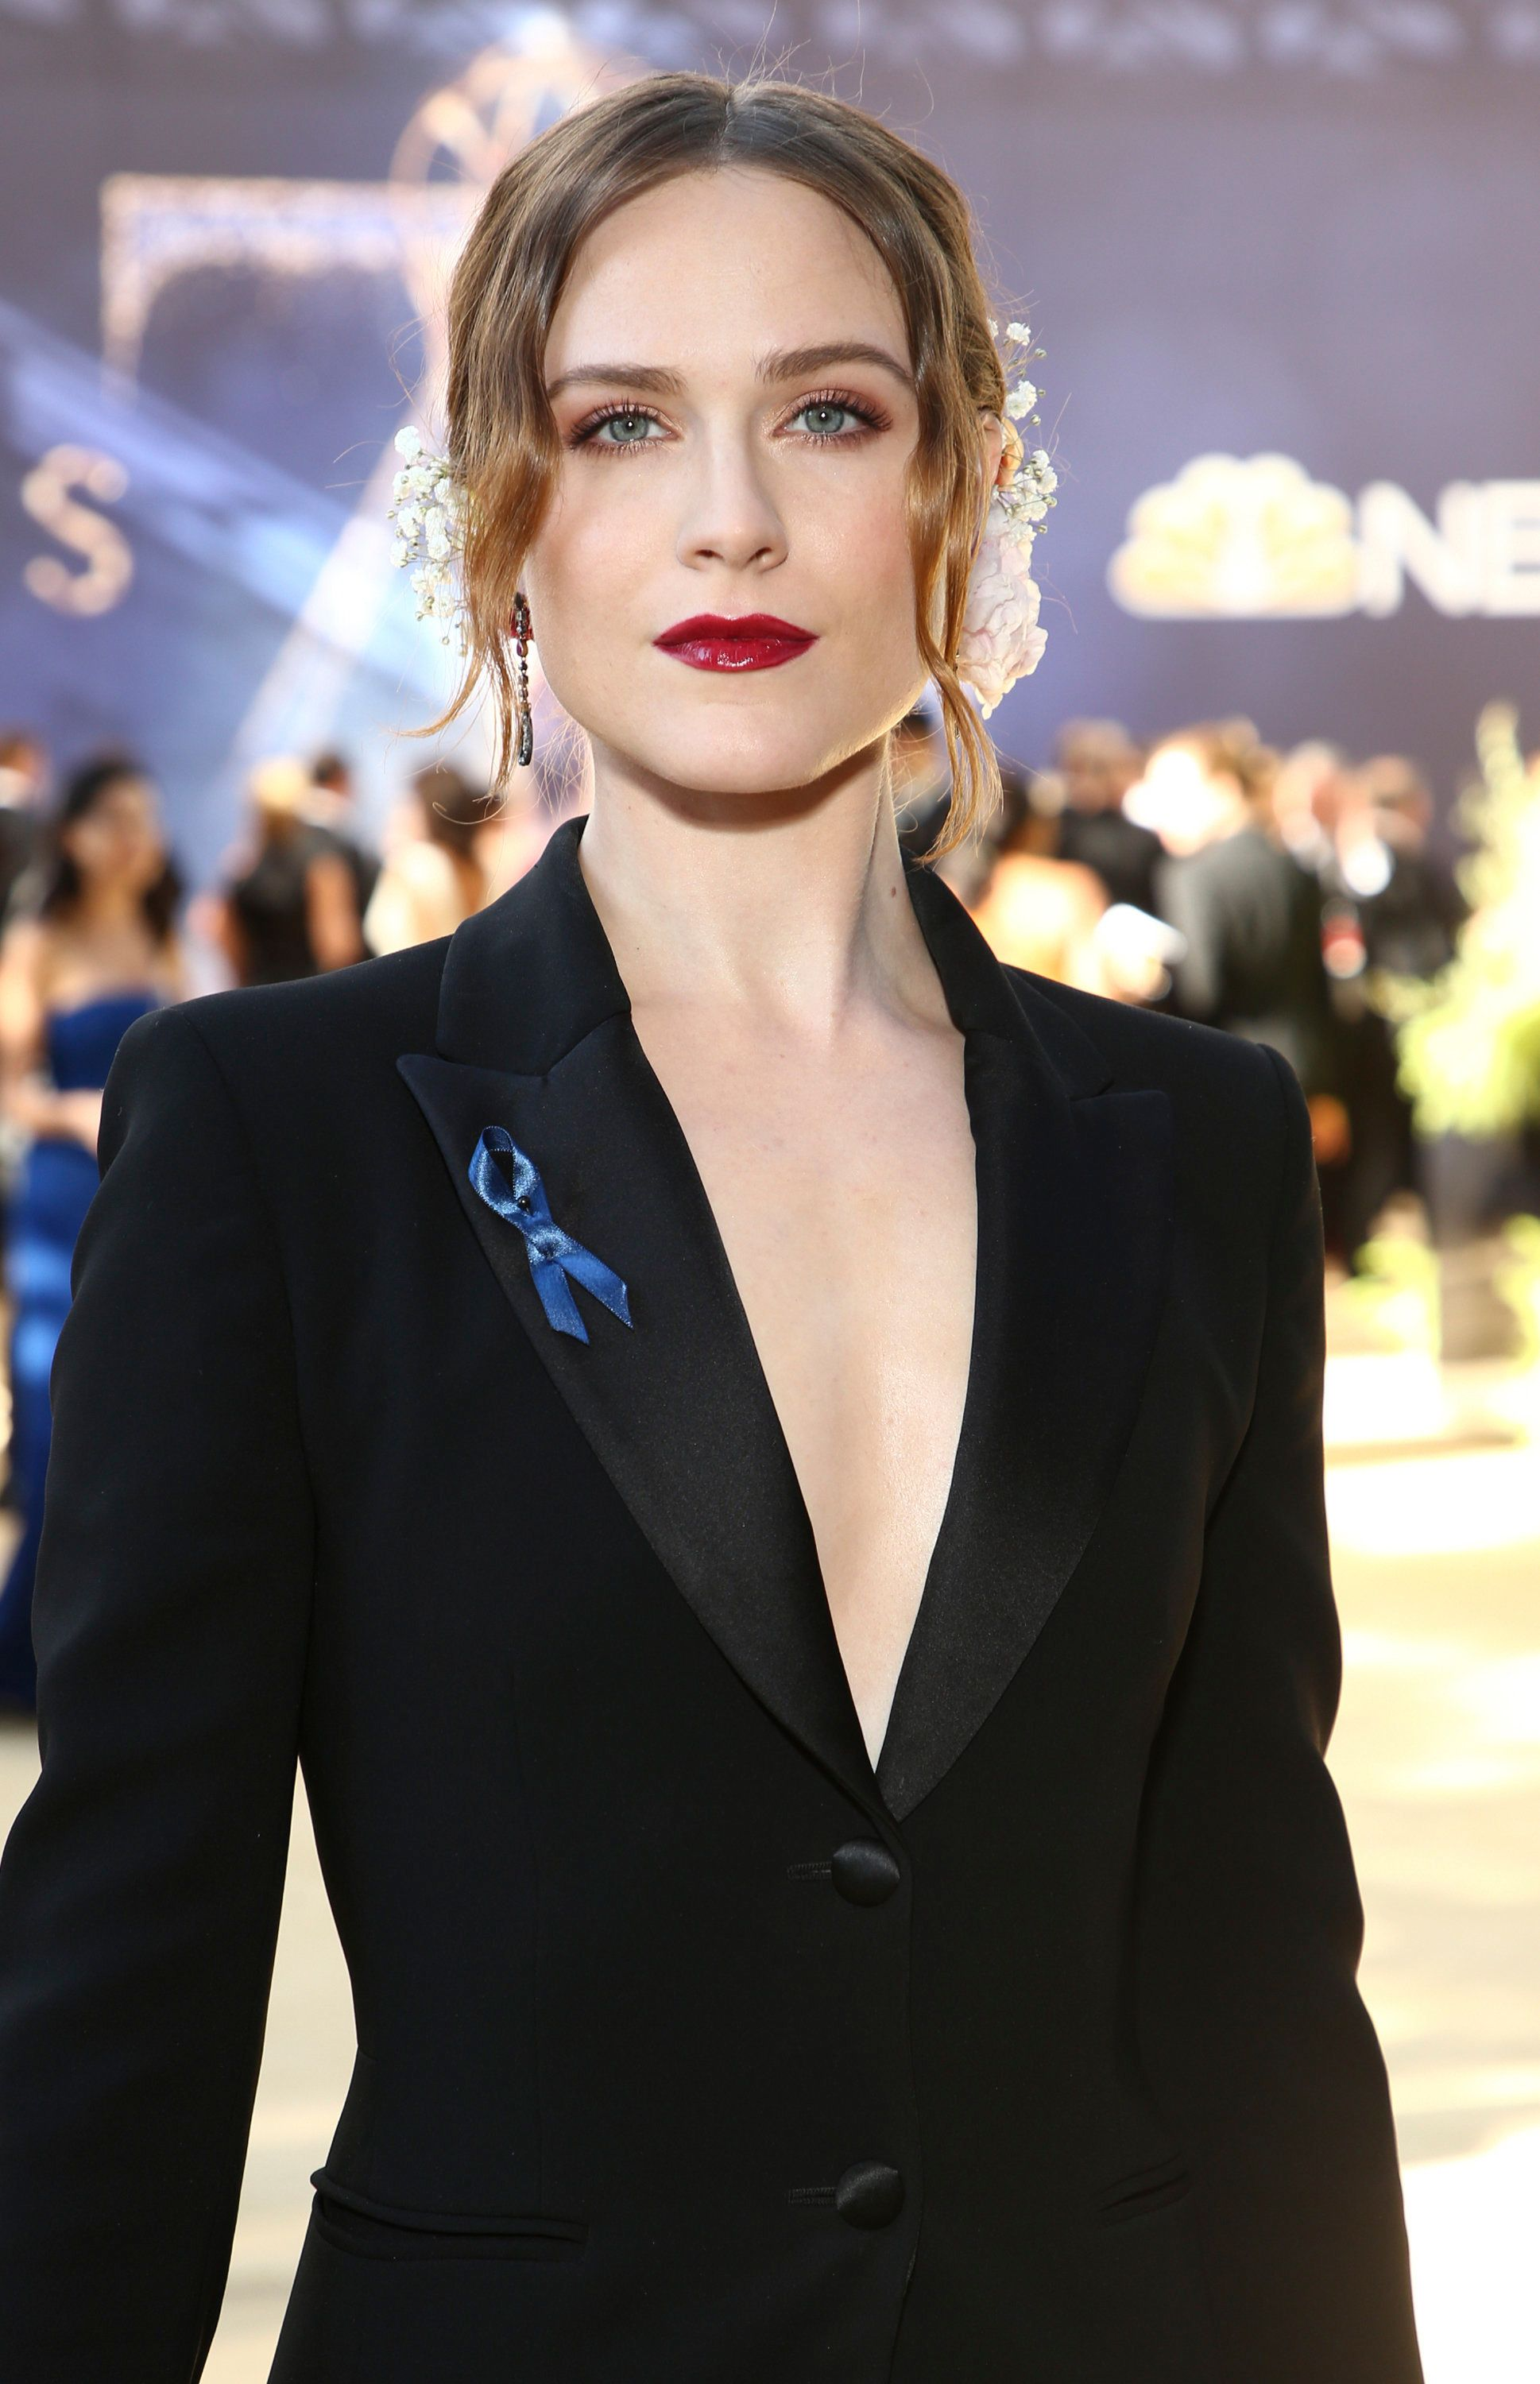 Evan Rachel Wood tweeted on March 11 that sheresorted to self-harm during a relationship with an abusive partner.